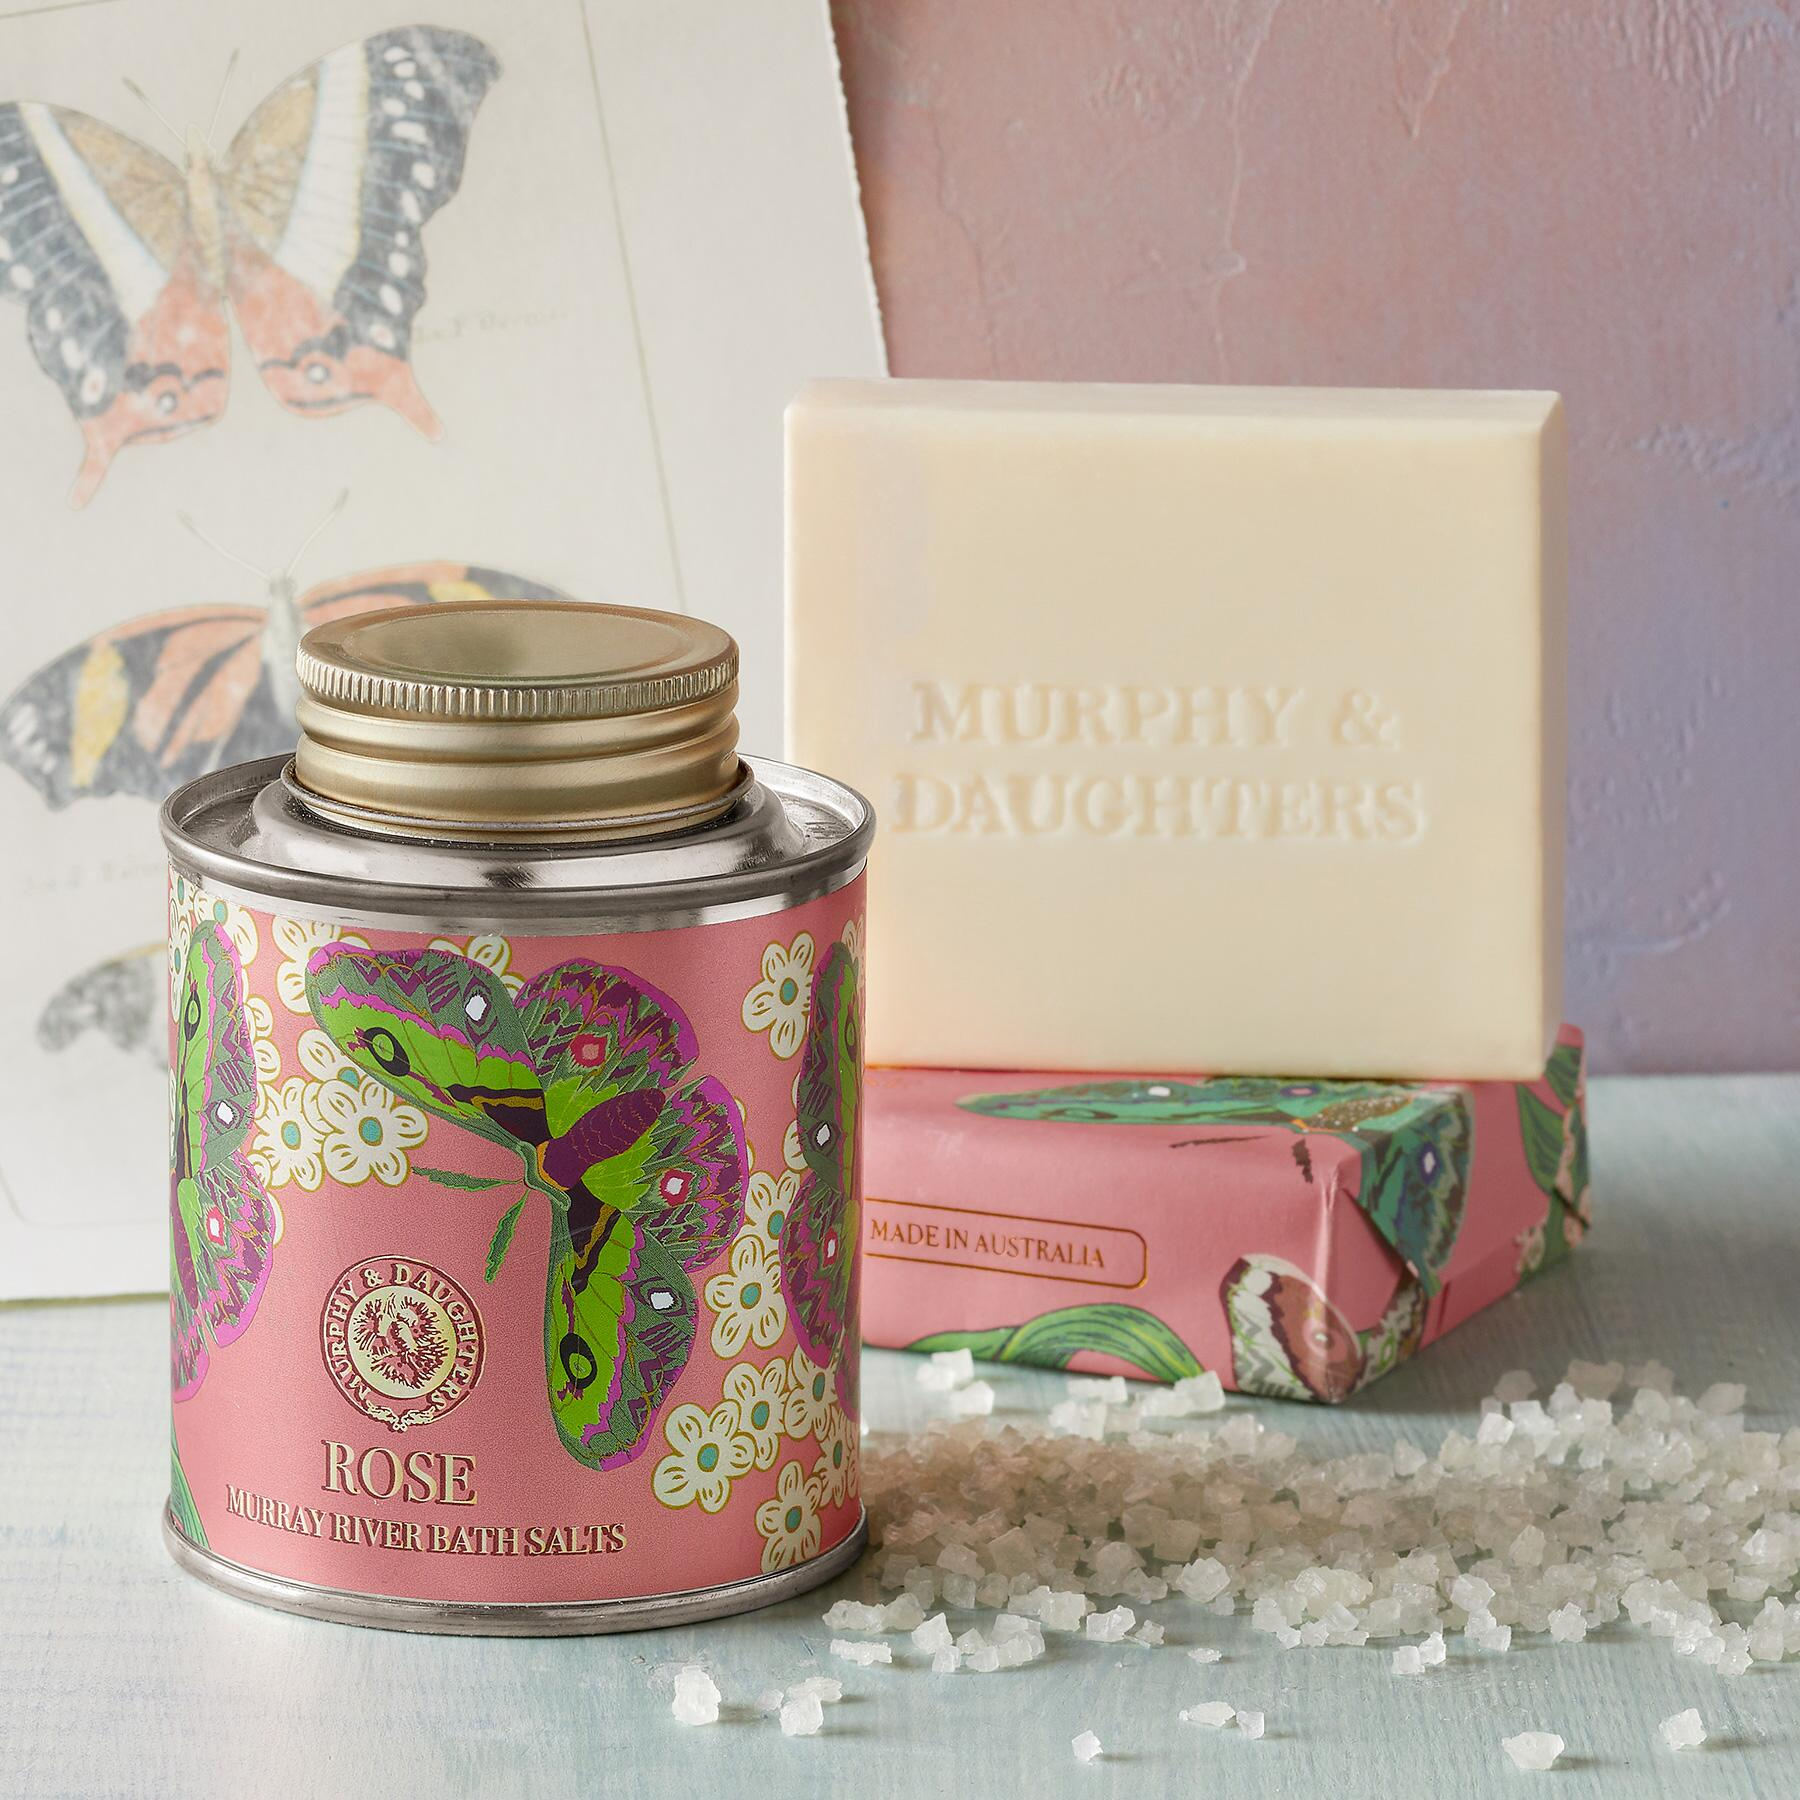 MURPHY & DAUGHTERS BOTANICAL SOAP: View 2